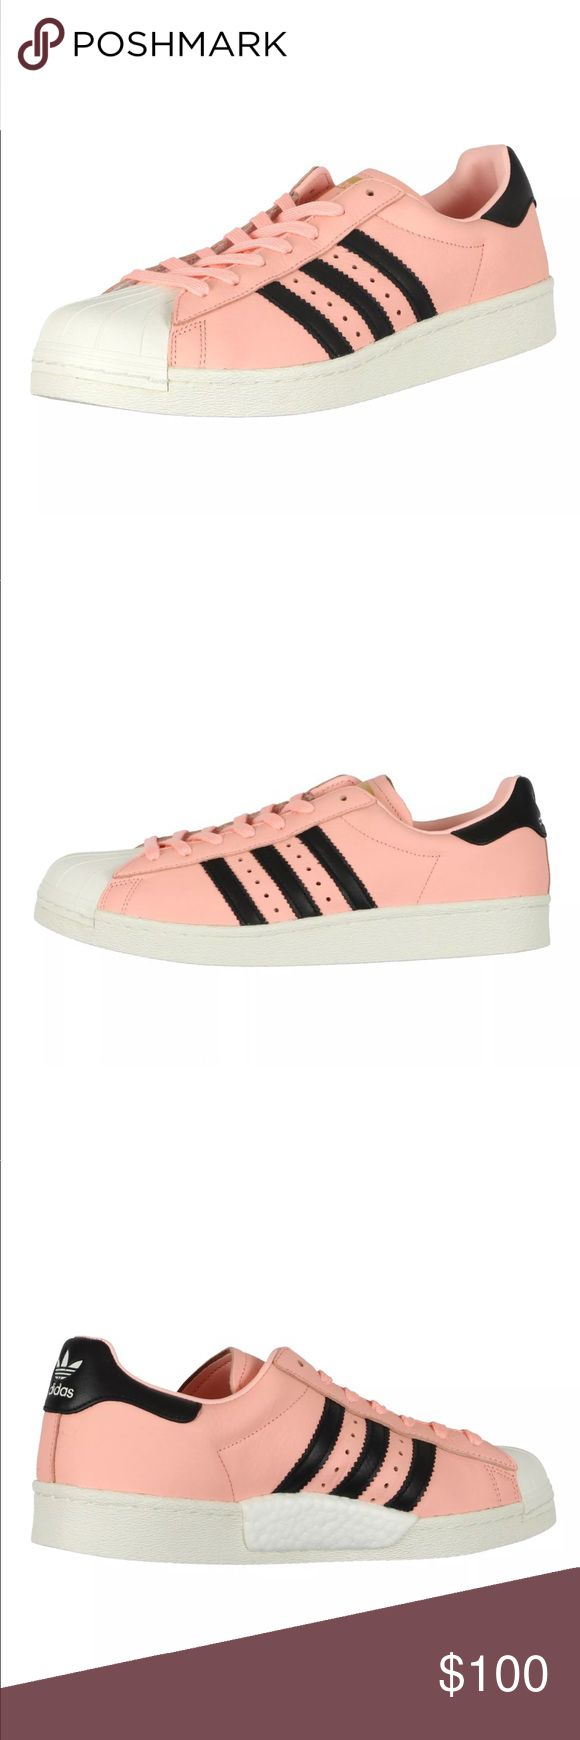 Adidas Men's Superstar Boost Sneakers Coral Pink Adidas Superstar Boost Sneakers (Style #BB2731). Shoes are coral hazel pink, black, and white in color. Launched in 1970 as a revolutionary basketball performance style, the Adidas Superstar shoe was the sp #MensFashionSneakers